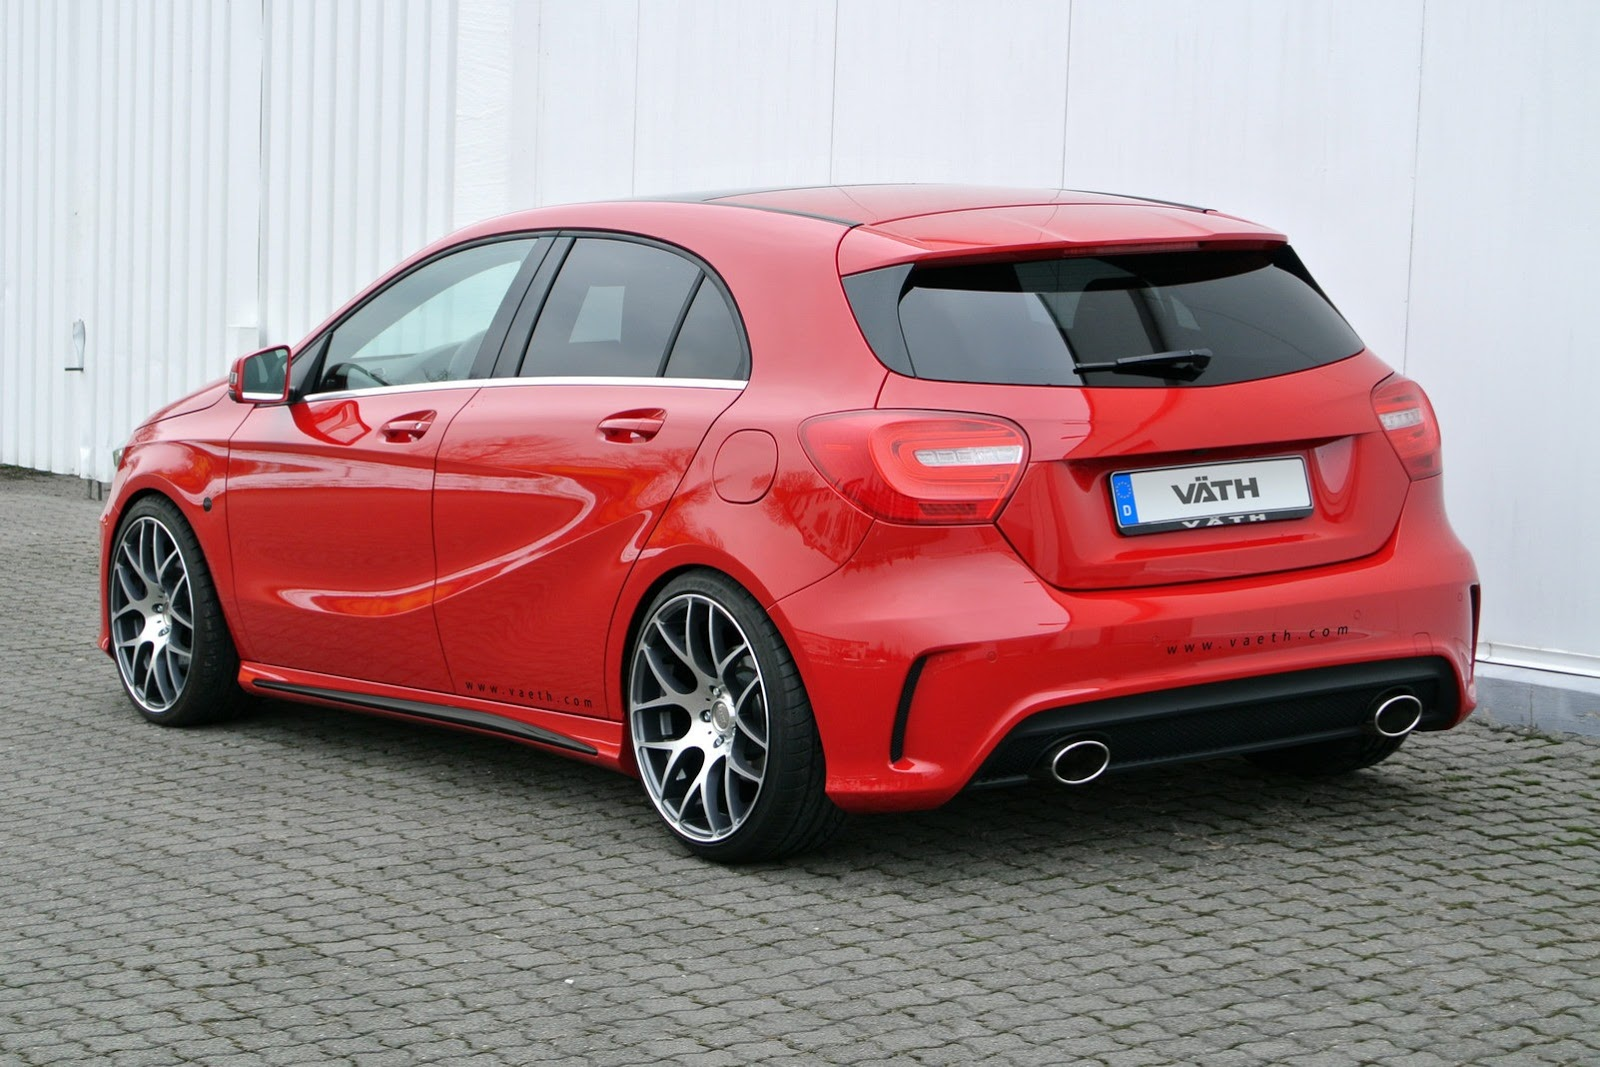 new mercedes a class tuning by vath a250 gets 245 hp. Black Bedroom Furniture Sets. Home Design Ideas